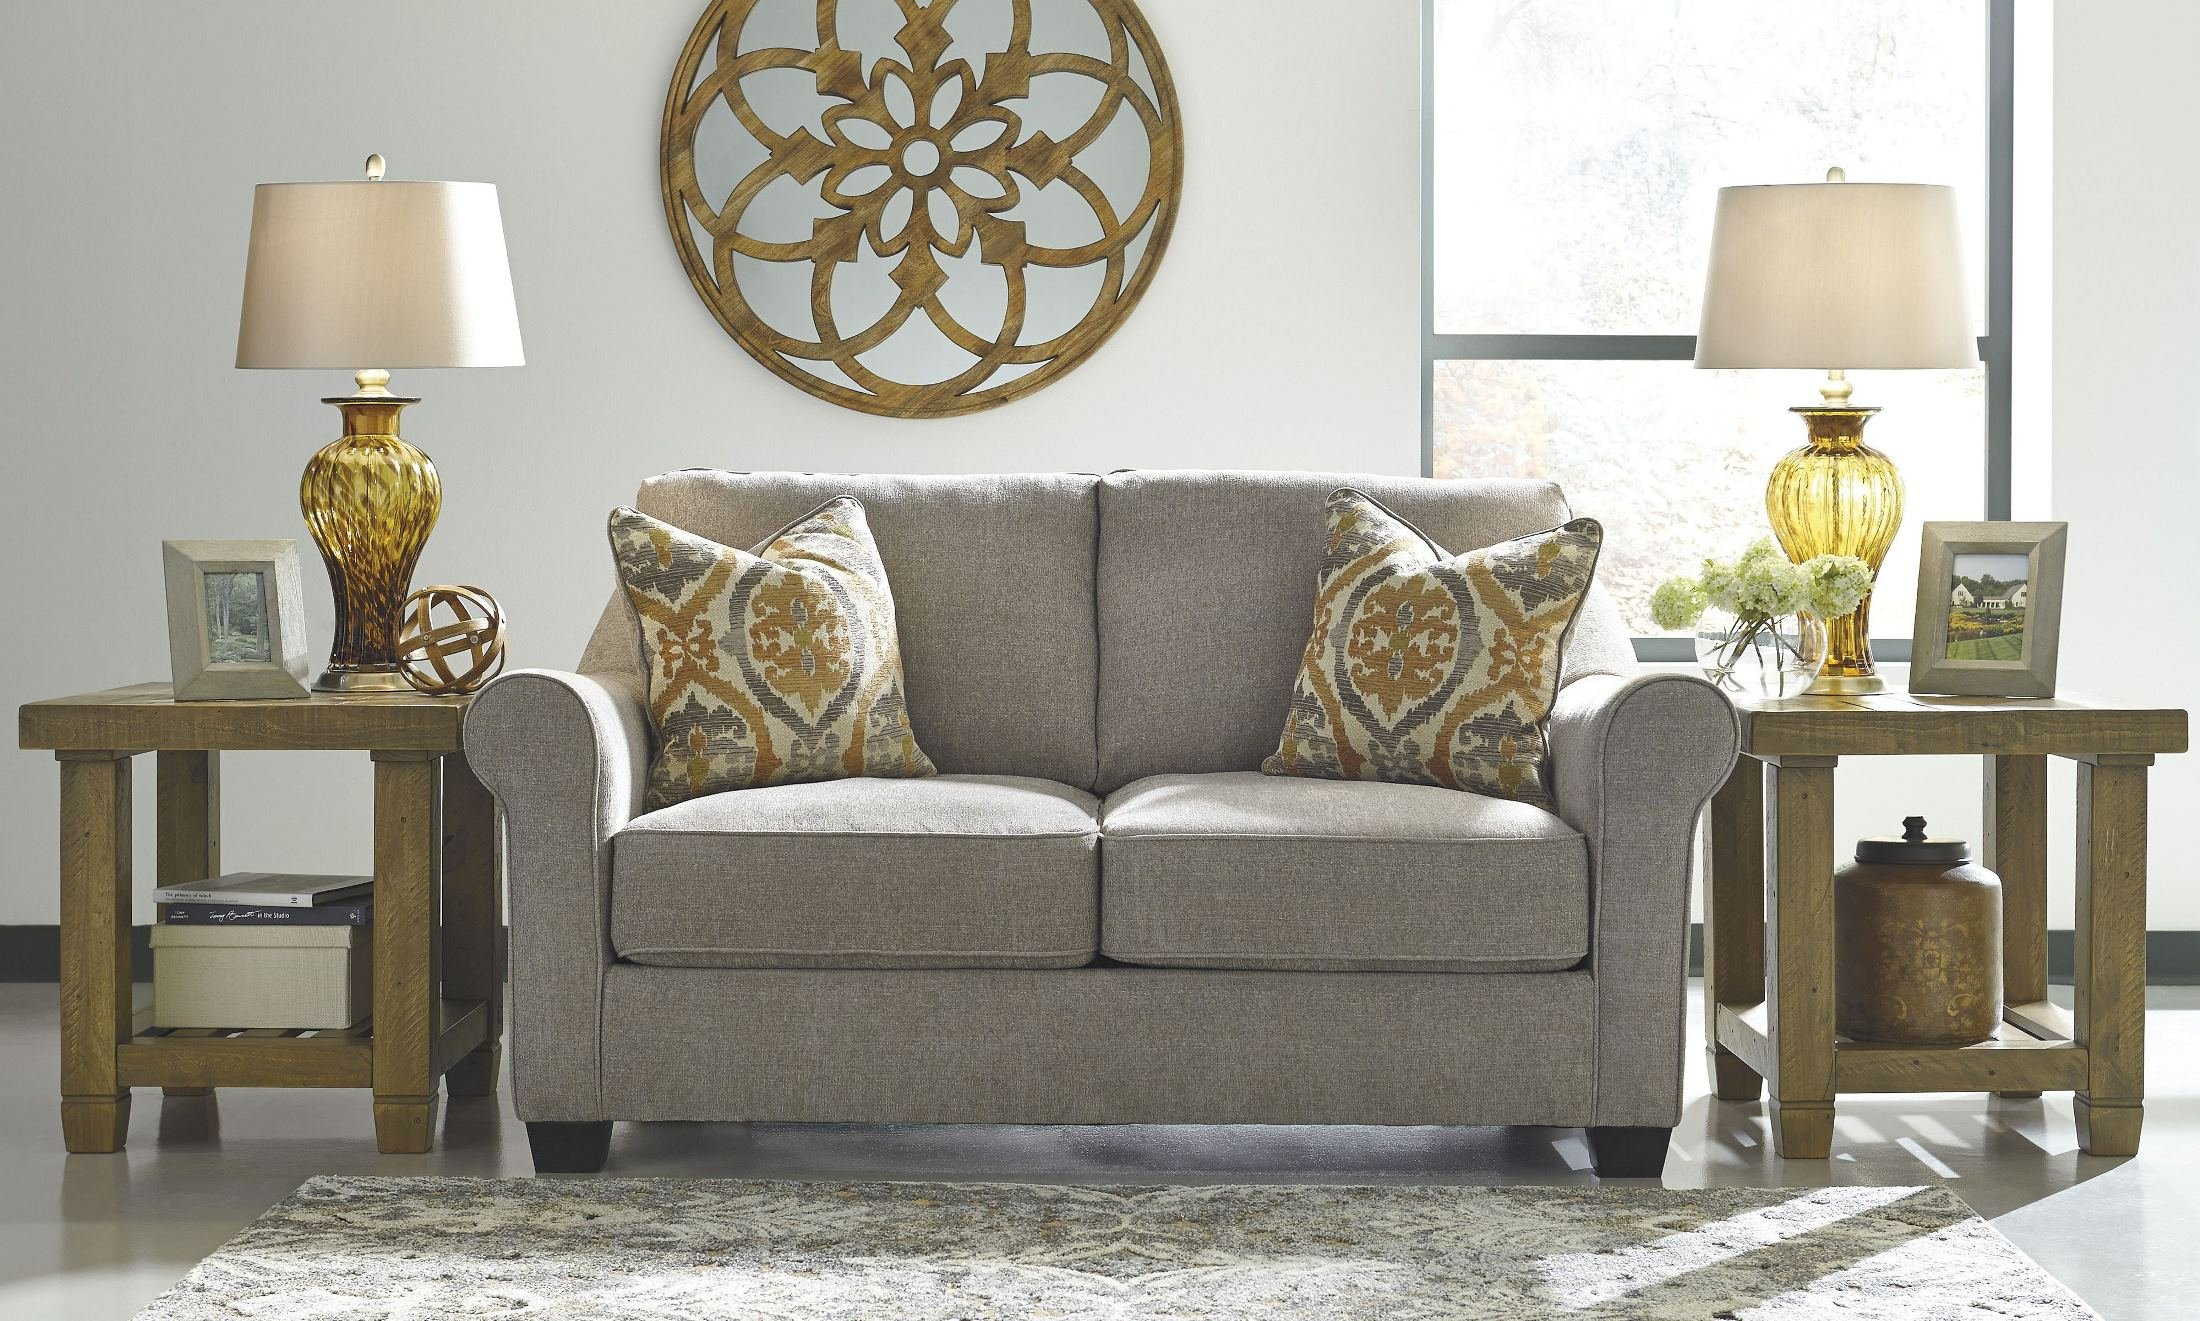 Benchcraft Leola 5360135 69'' Fabric Loveseat with Rolled Arms Pillows Included and Reversible UltraPlush Cushions in by Benchcraft (Image #1)